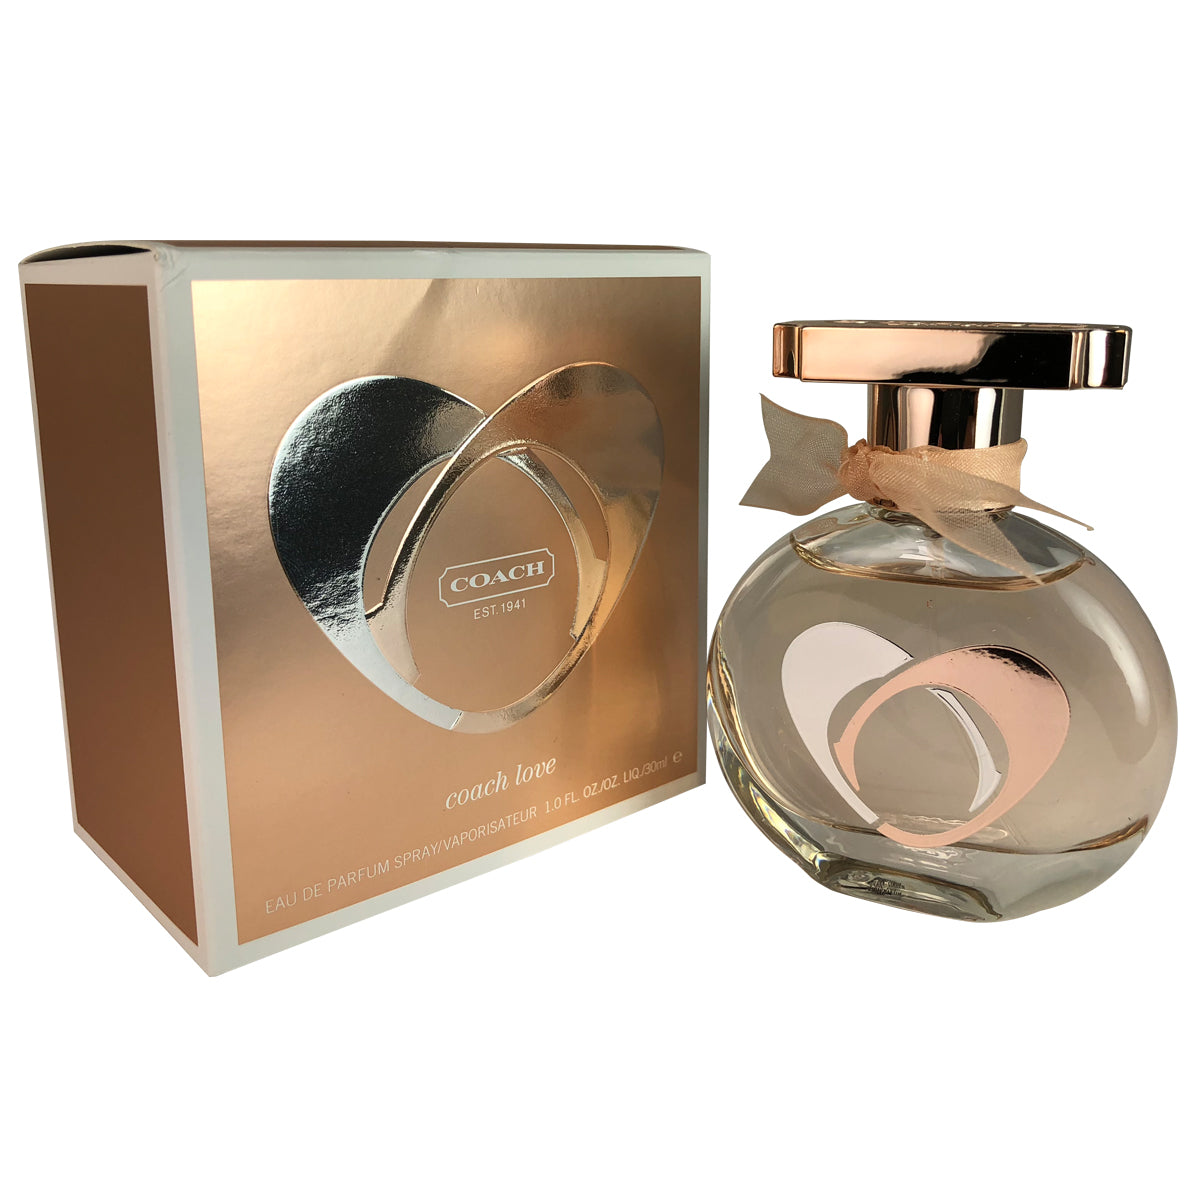 Coach Love For Women by Coach 1.0 oz Eau De Parfum Spray